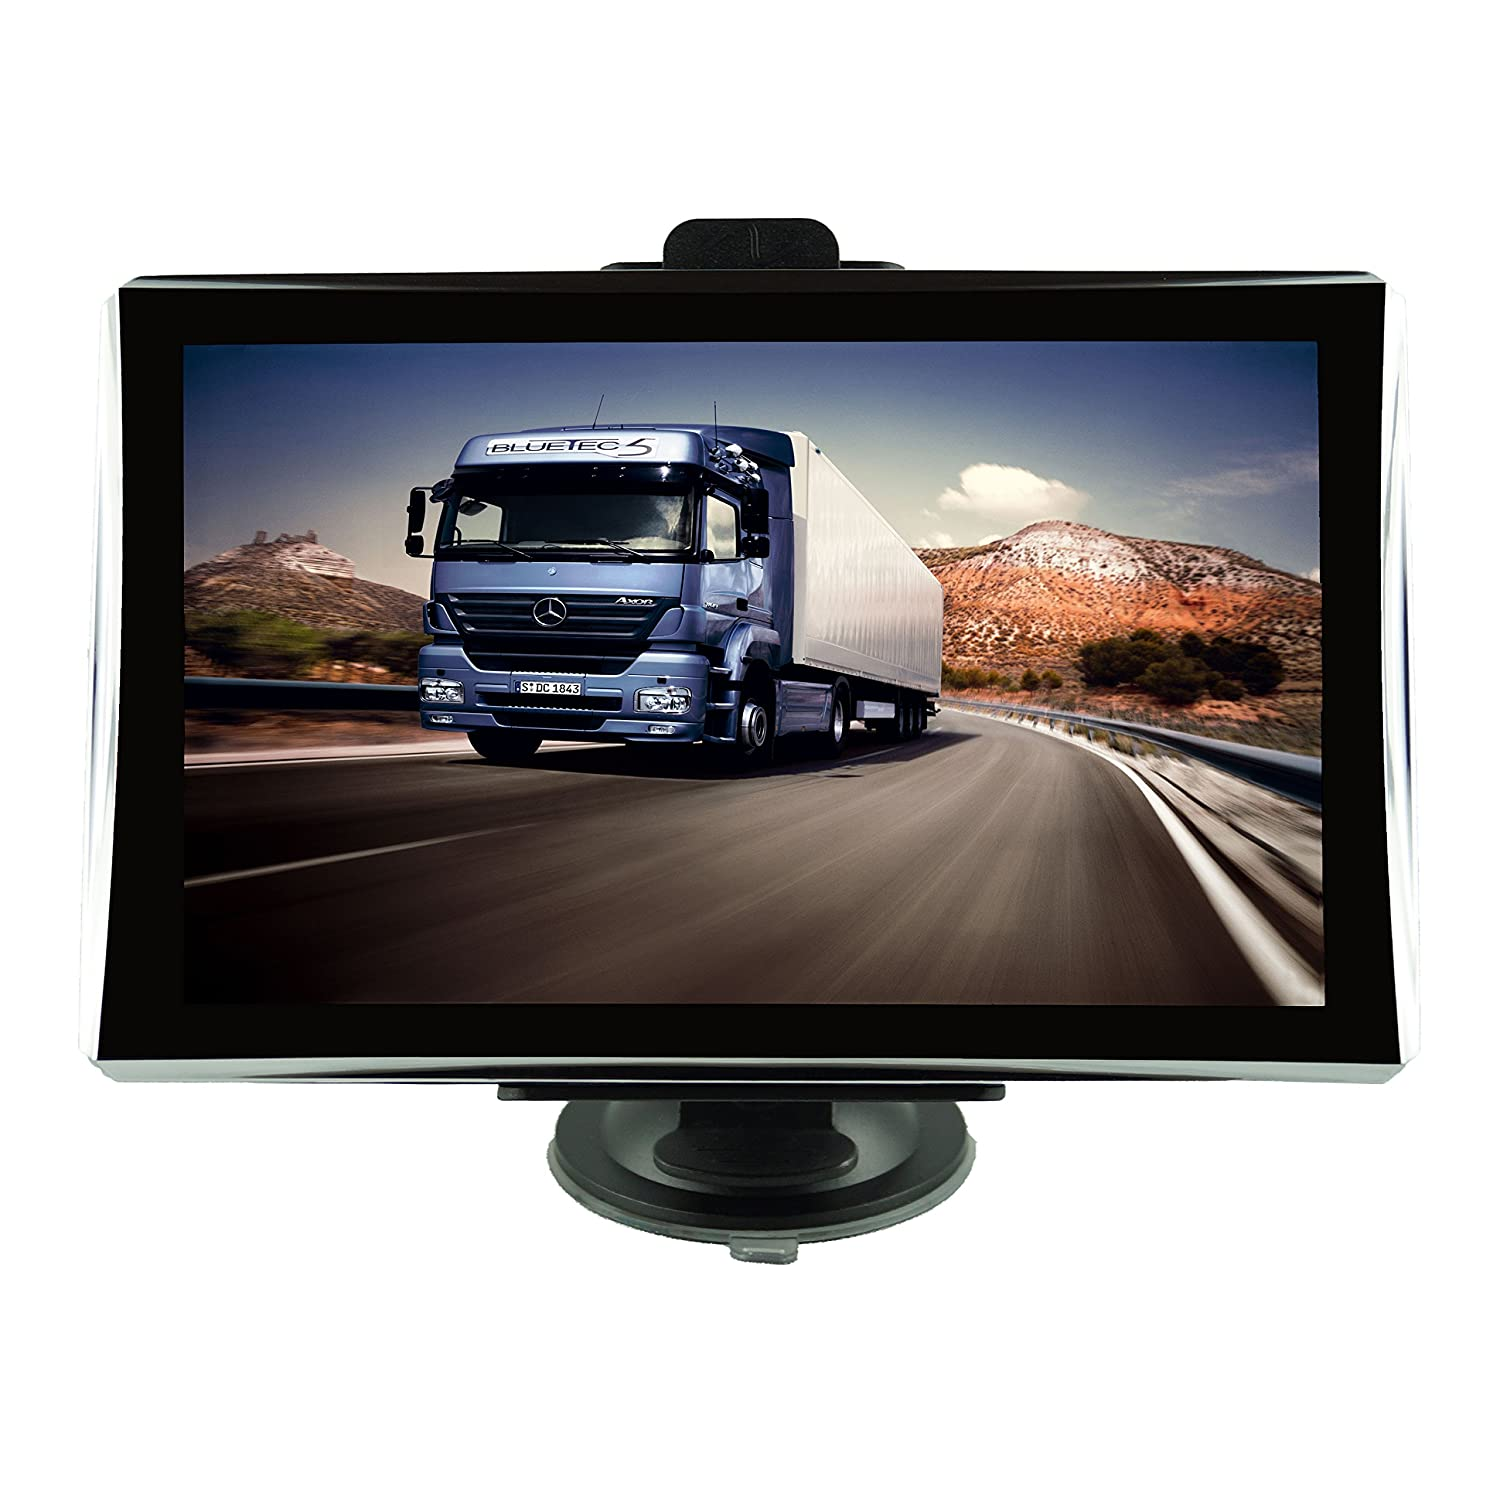 Navigationsgerä t (17,78cm (7') Display, MP3-/Video-Player, EU Karten mit 46 Lä ndern) 78cm (7) Display Brother_Inc N-7OB